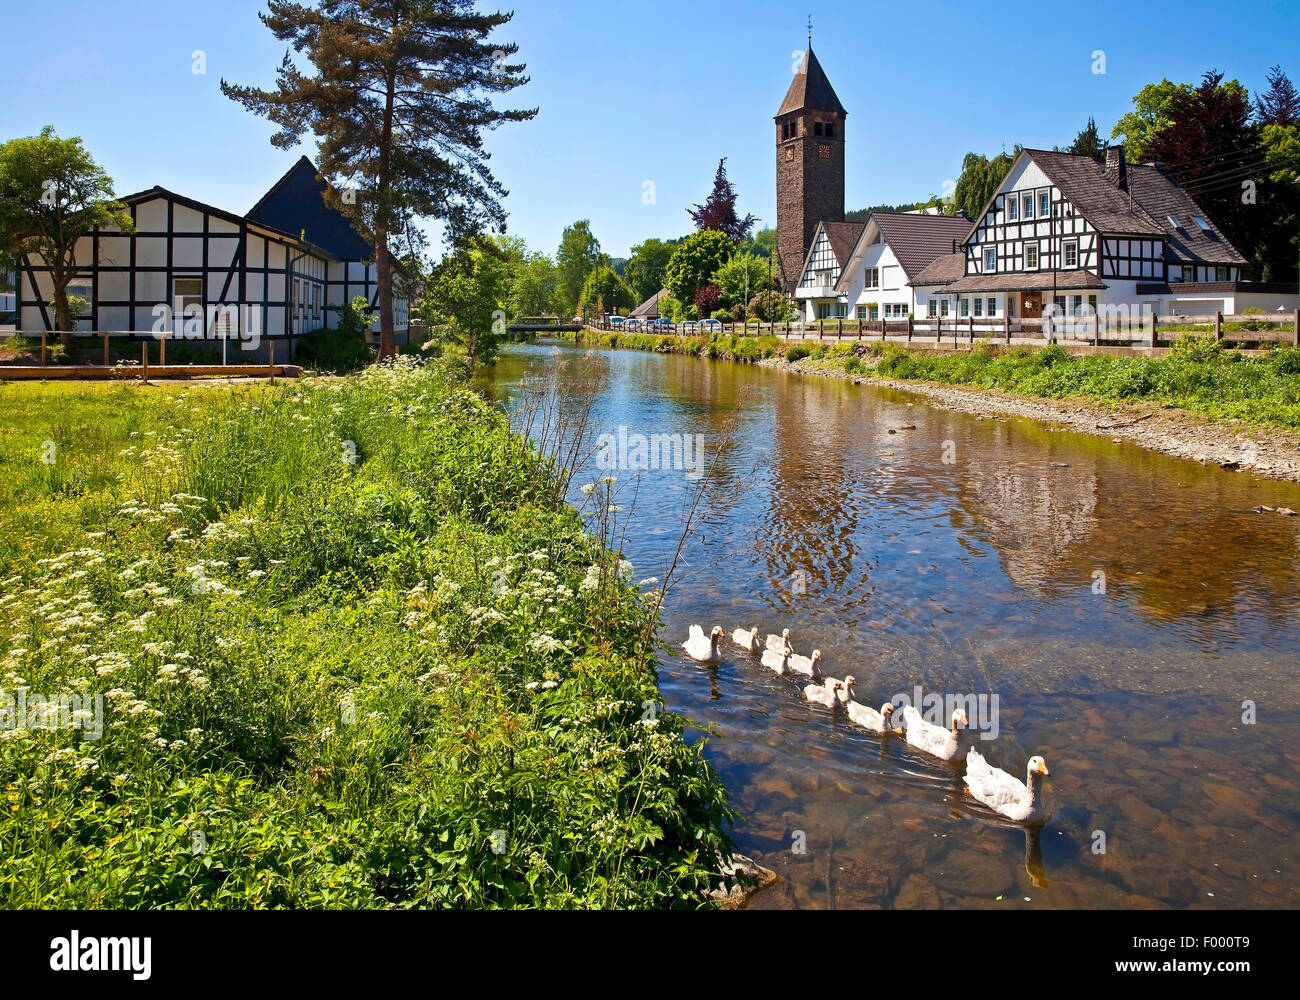 River Lenne district Saalhausen, Germany, North Rhine-Westphalia, Sauerland, Lennestadt Stock Photo